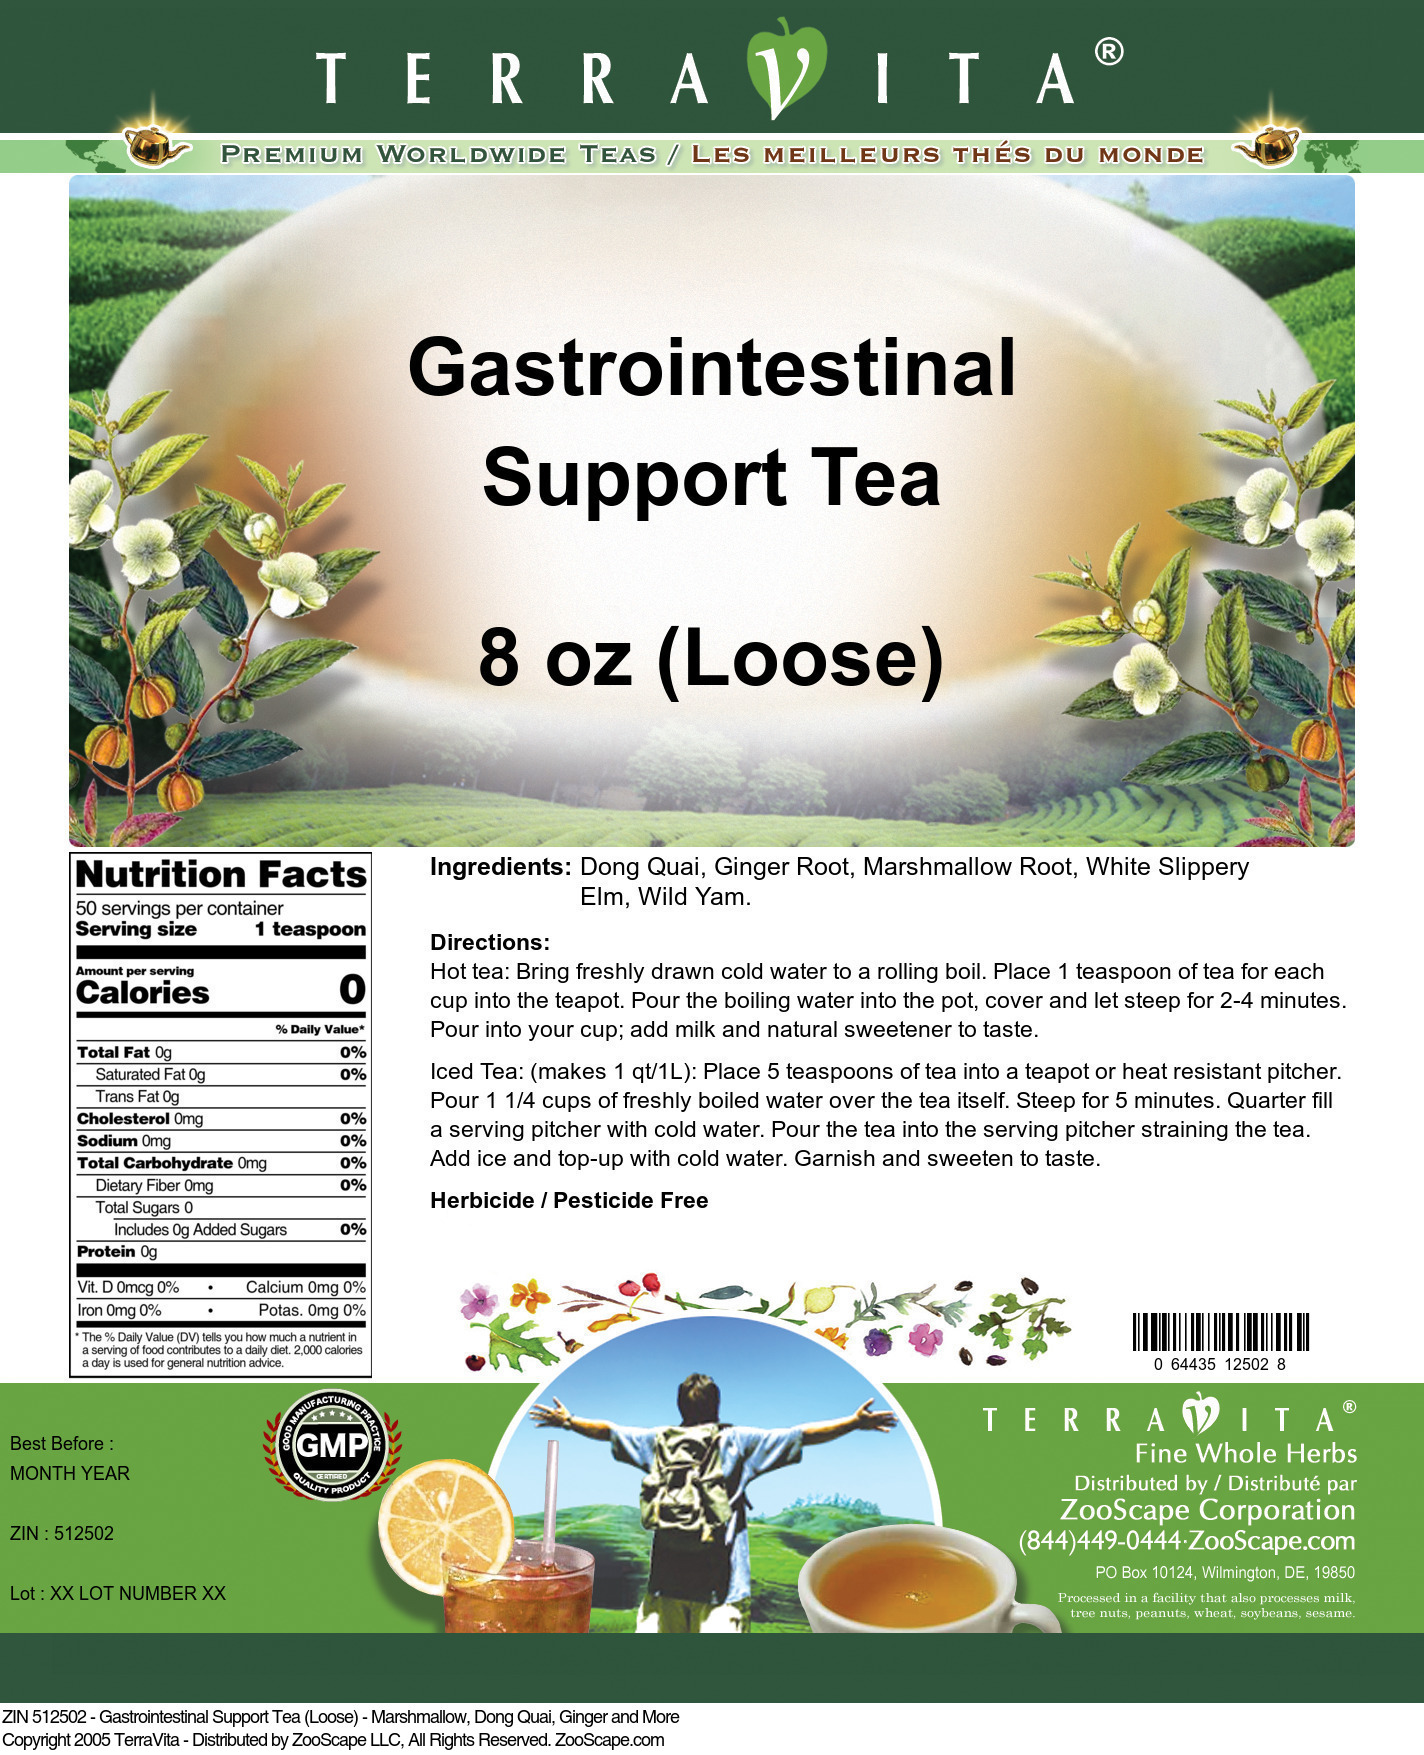 Gastrointestinal Support Tea (Loose) - Marshmallow, Dong Quai, Ginger and More